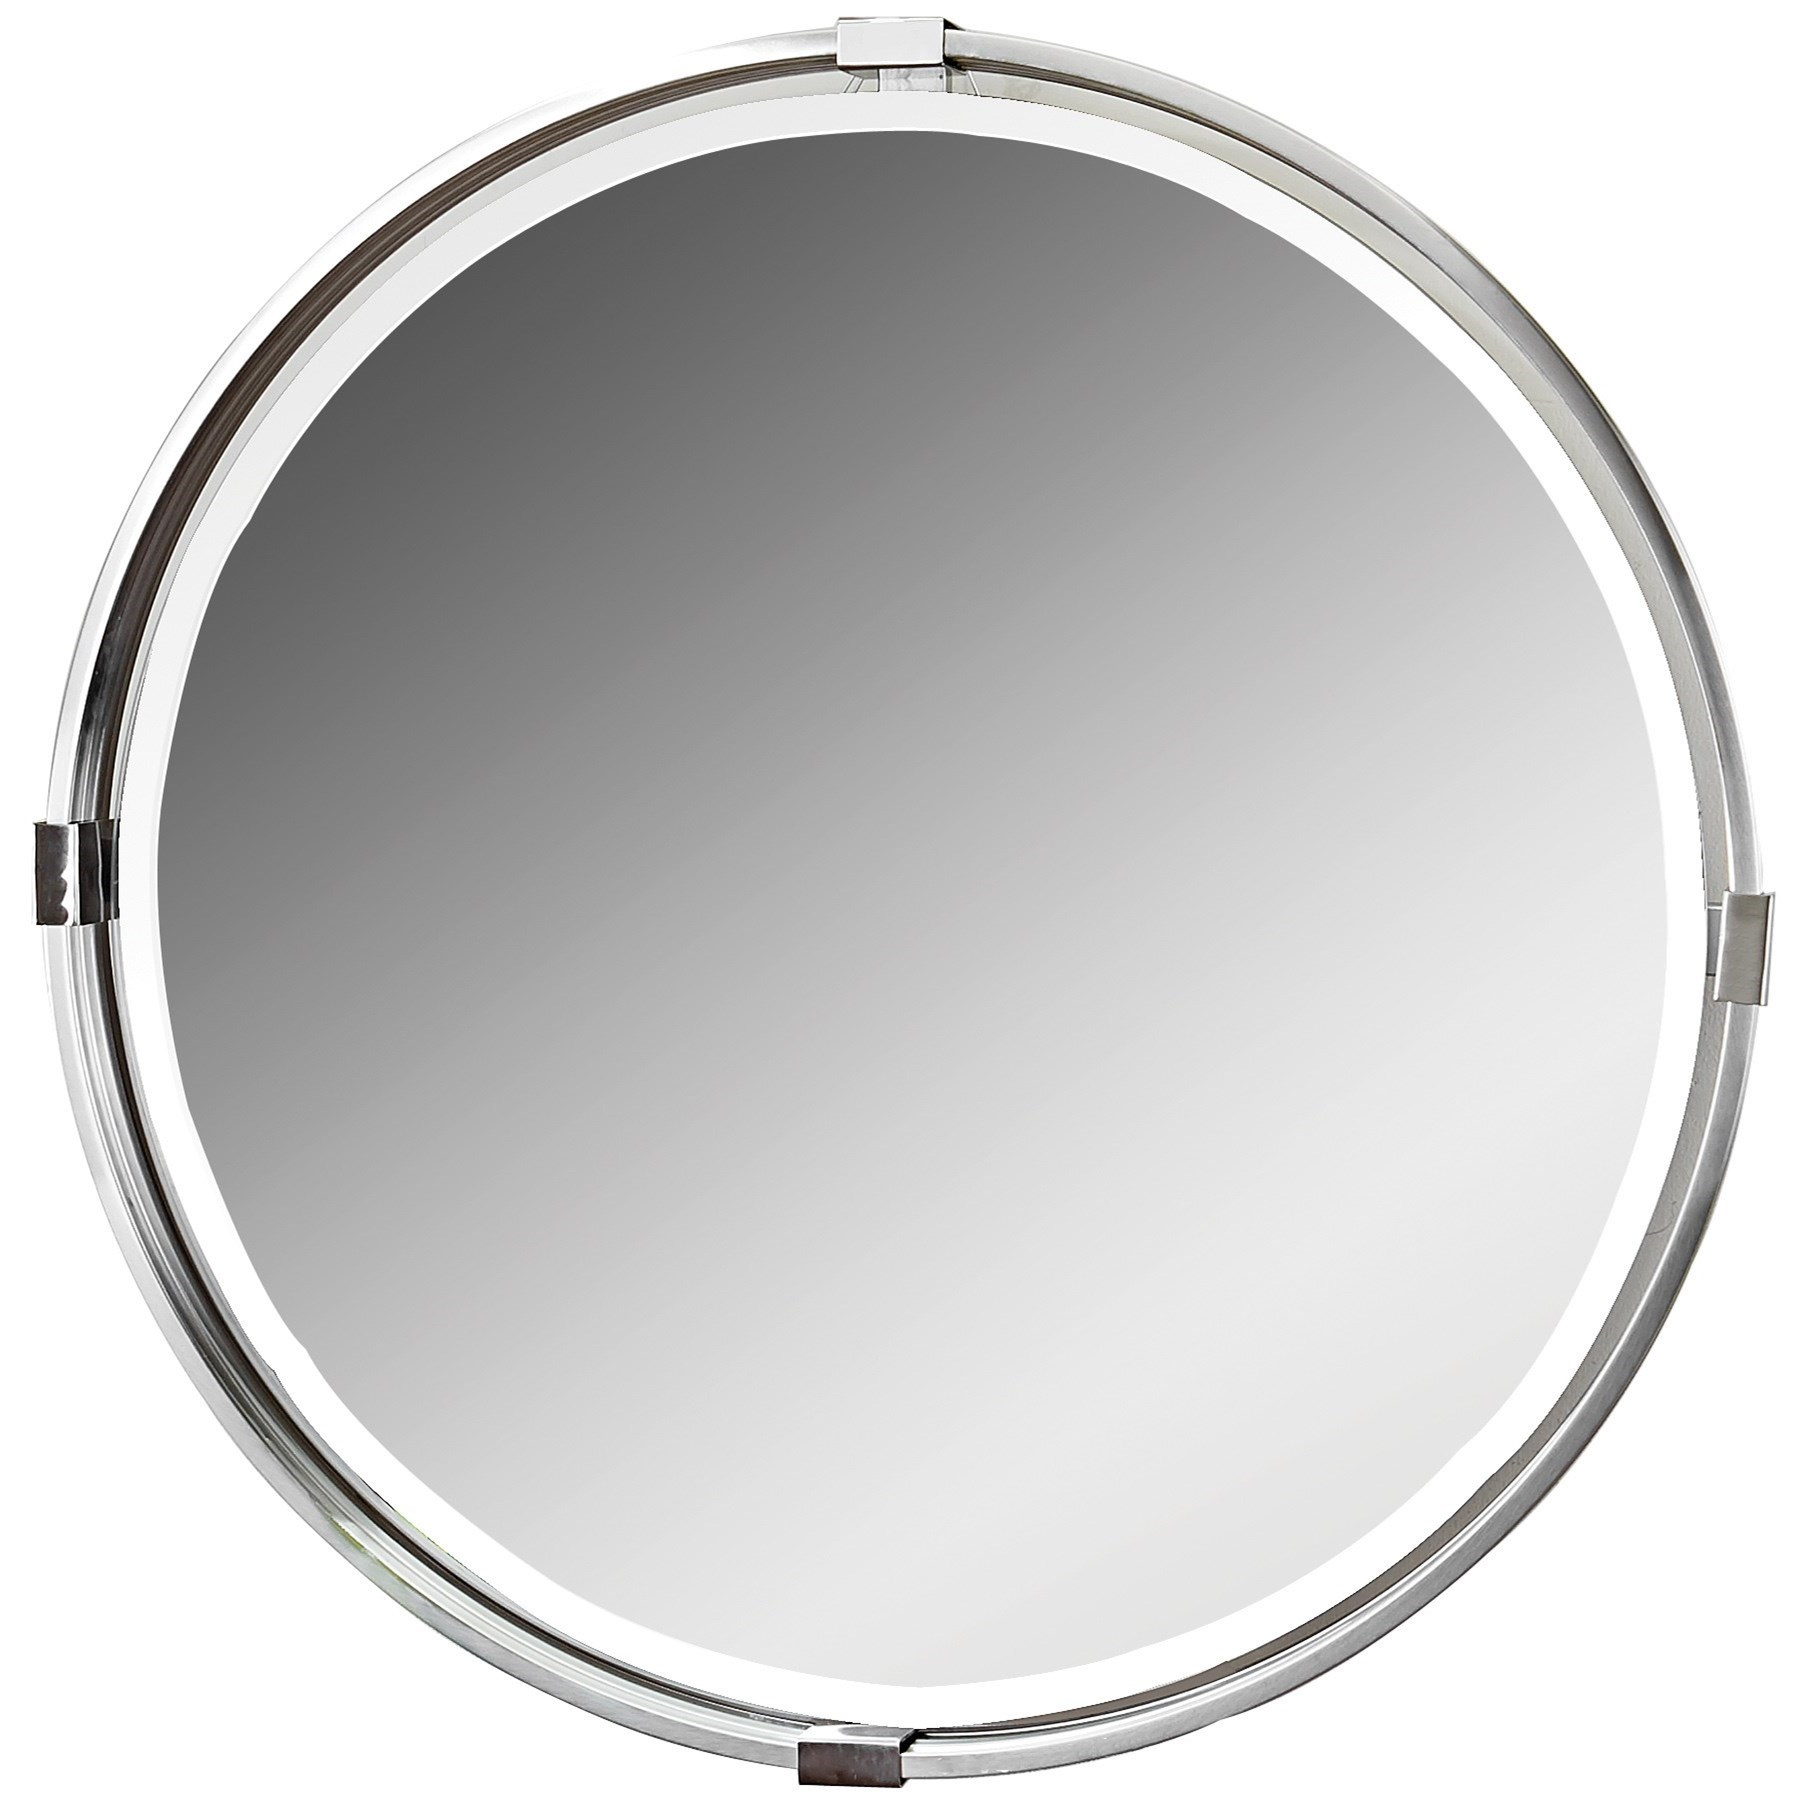 Uttermost Mirrors Tazlina Brushed Nickel Round Mirror - Item Number: 09109